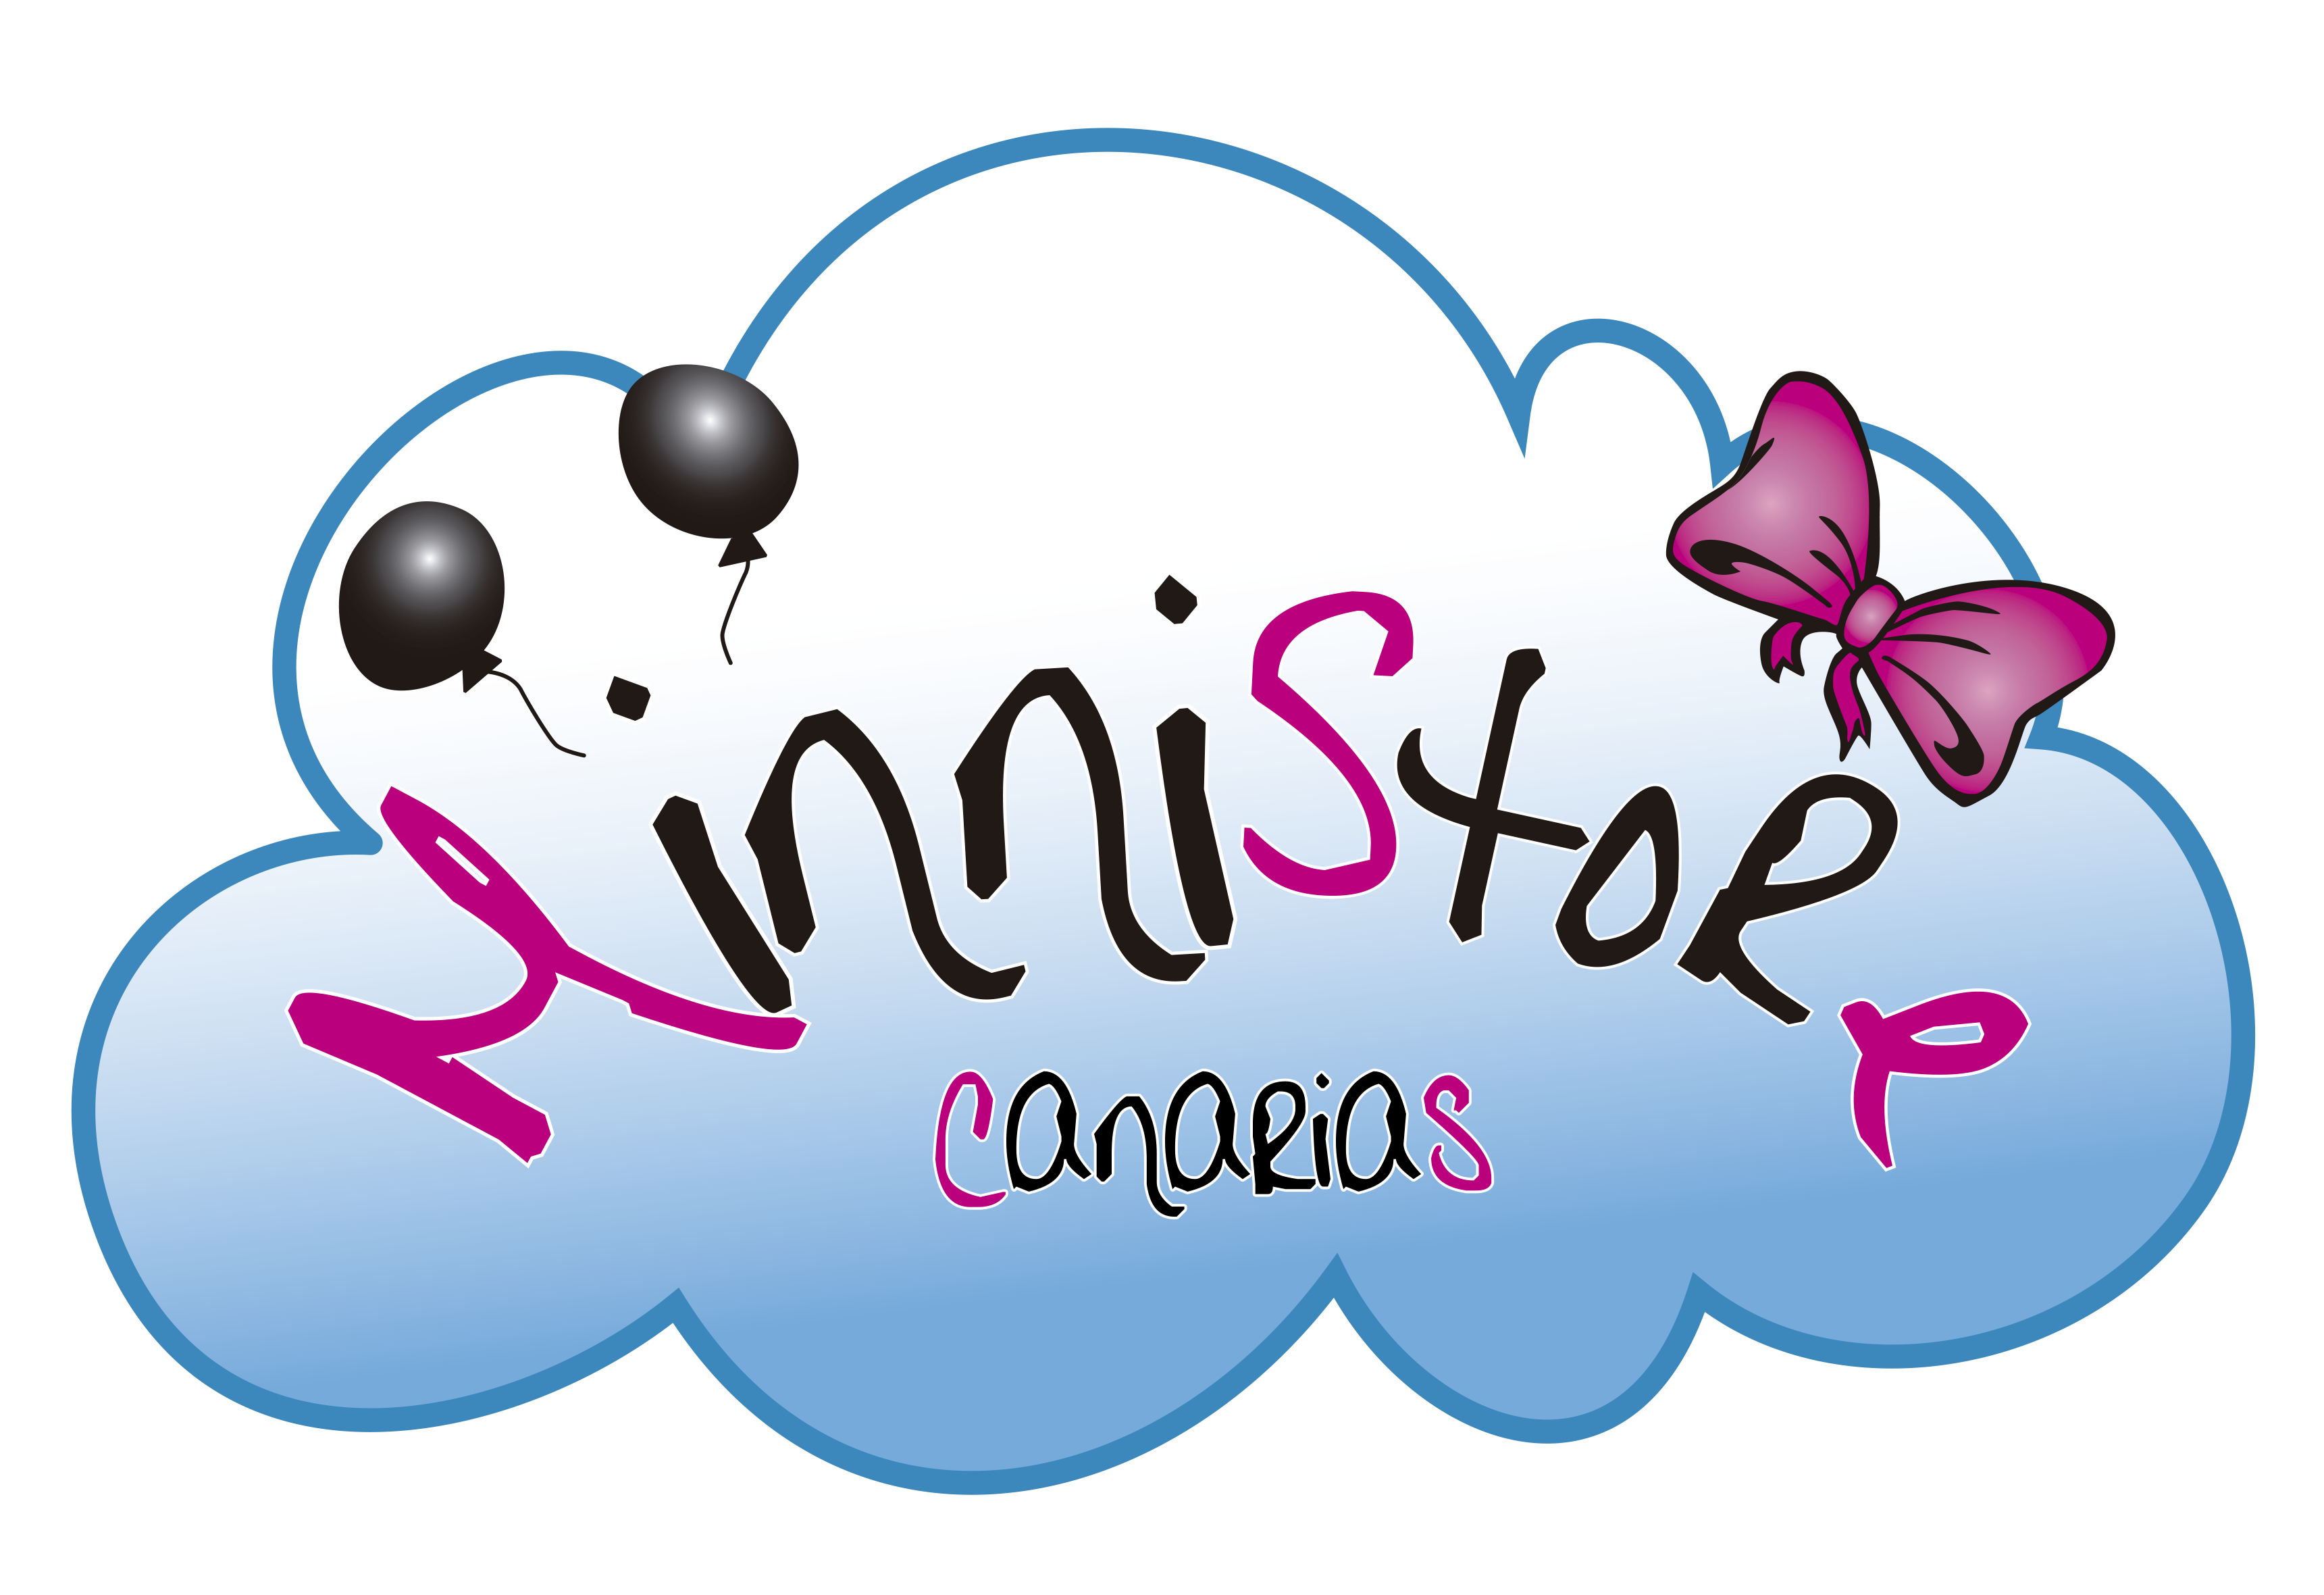 MinniStore Canarias